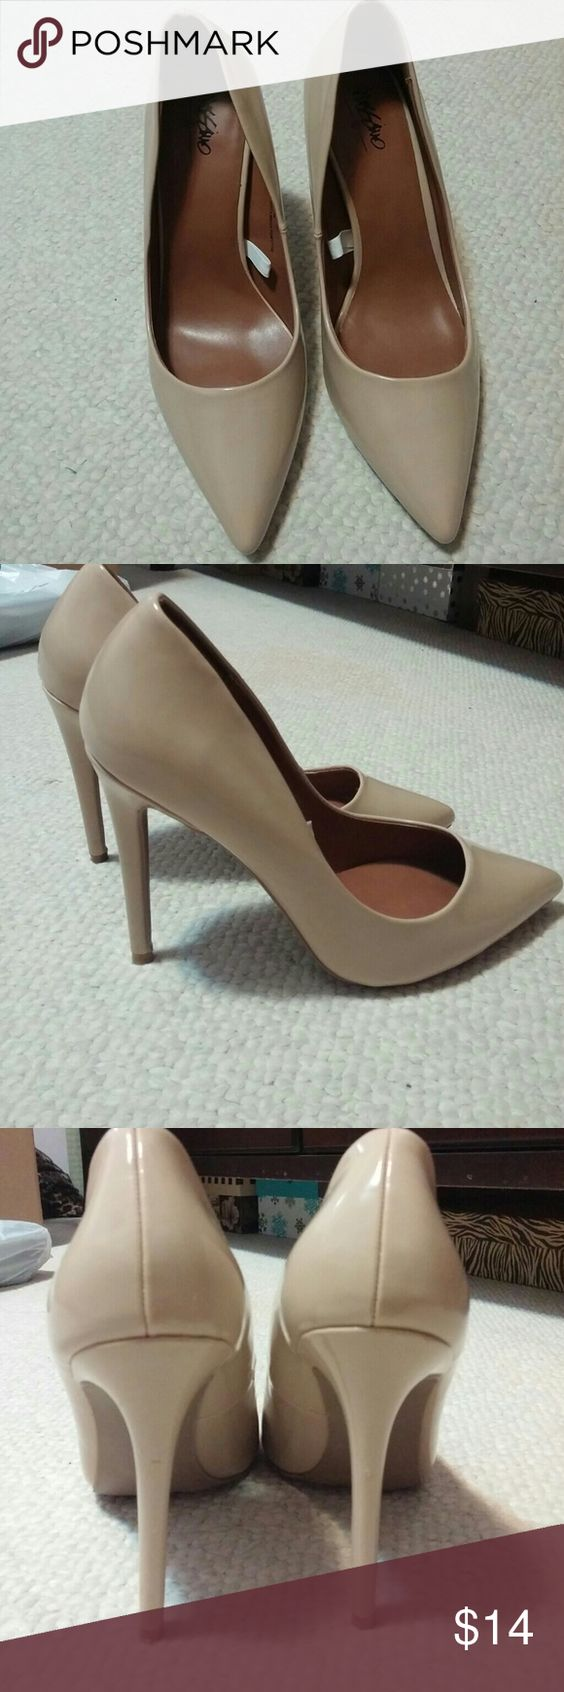 Mossimo Nude Pumps Nude pumps. 4 inch heel. Only worn once for a wedding. Sorry no trades. Mossimo Supply Co Shoes Heels